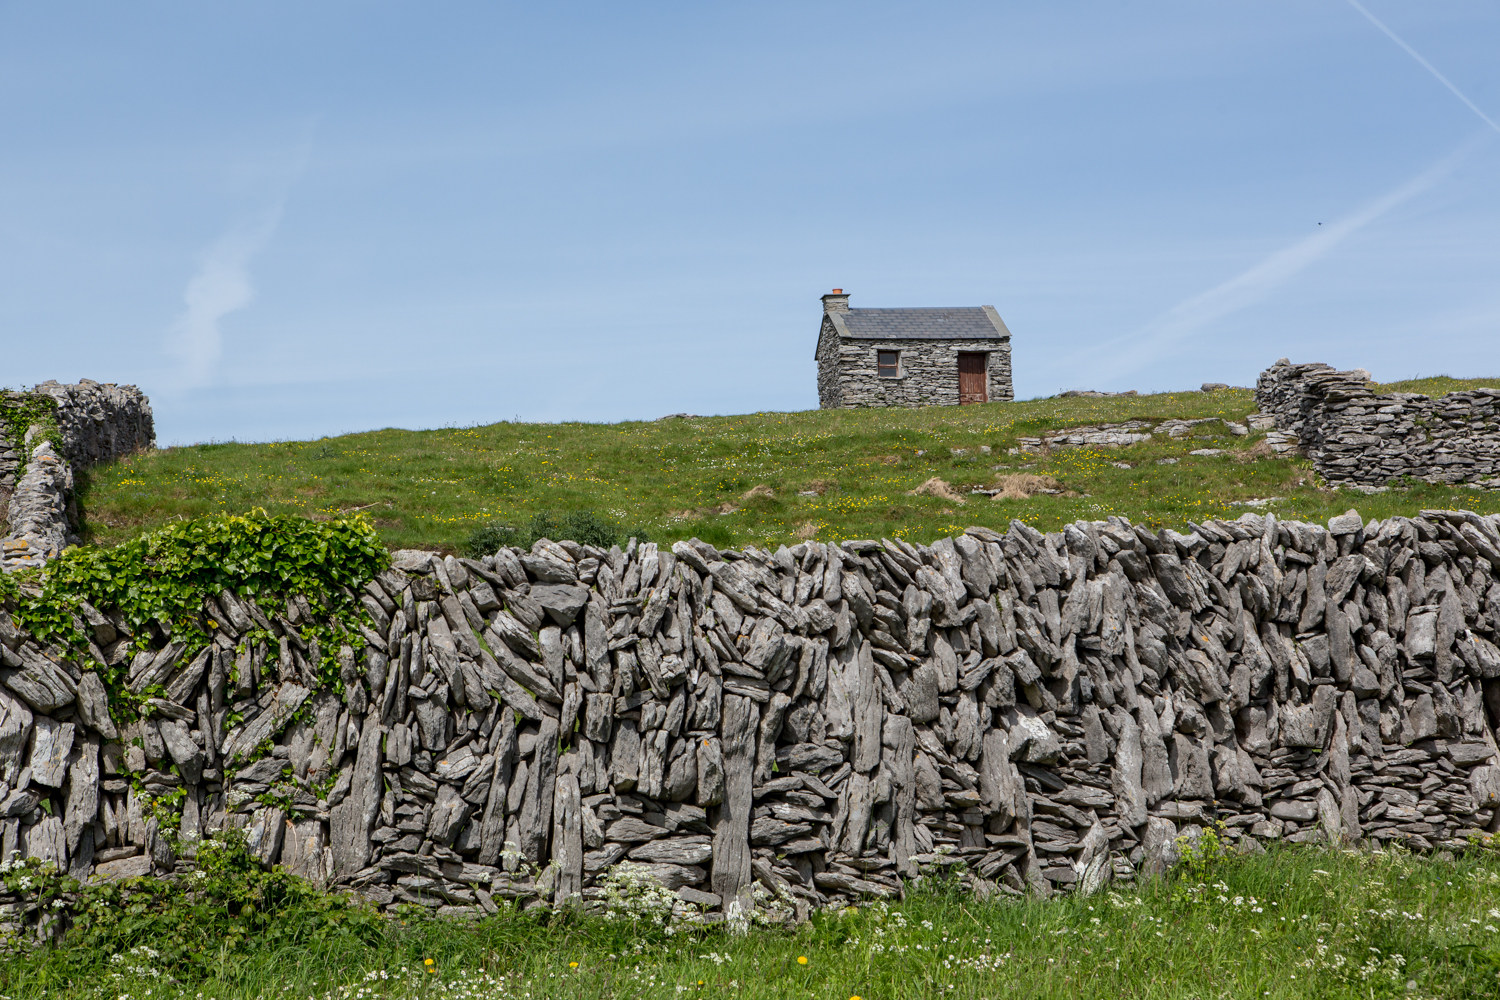 A local stone hut which appeared still to be in use.